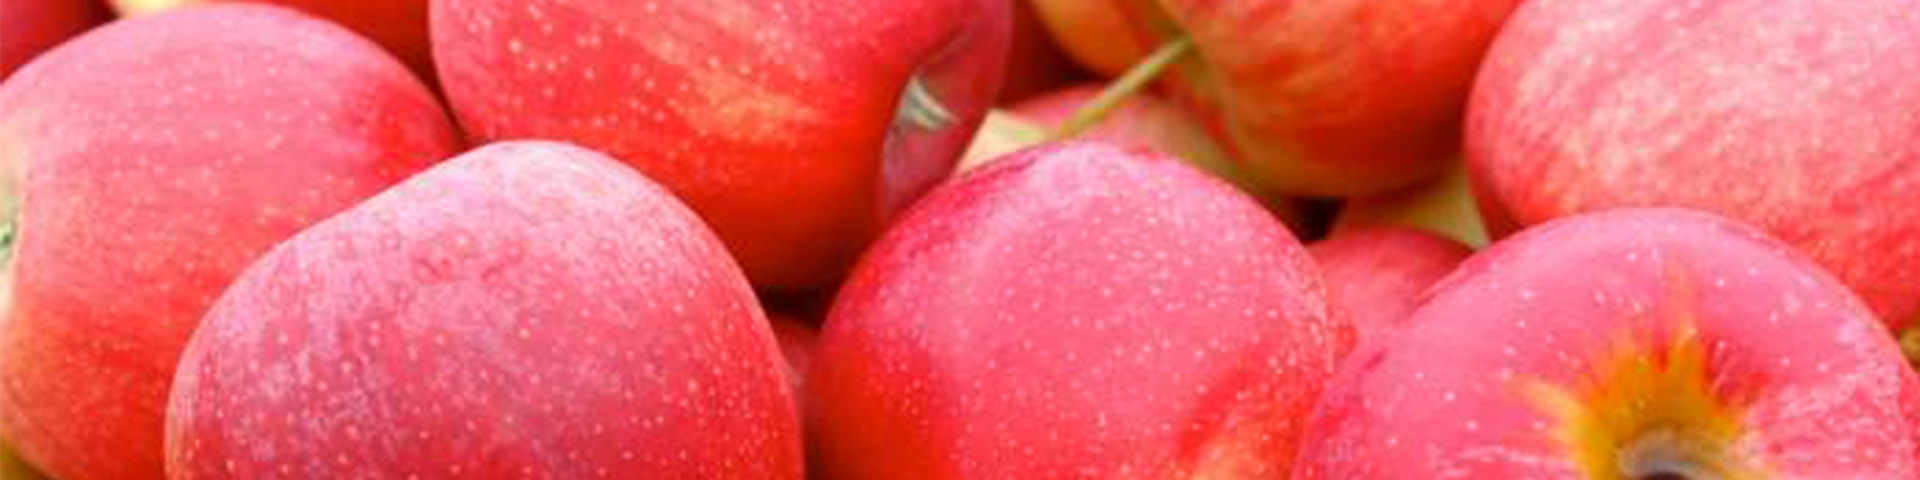 HERO apples 1920x480